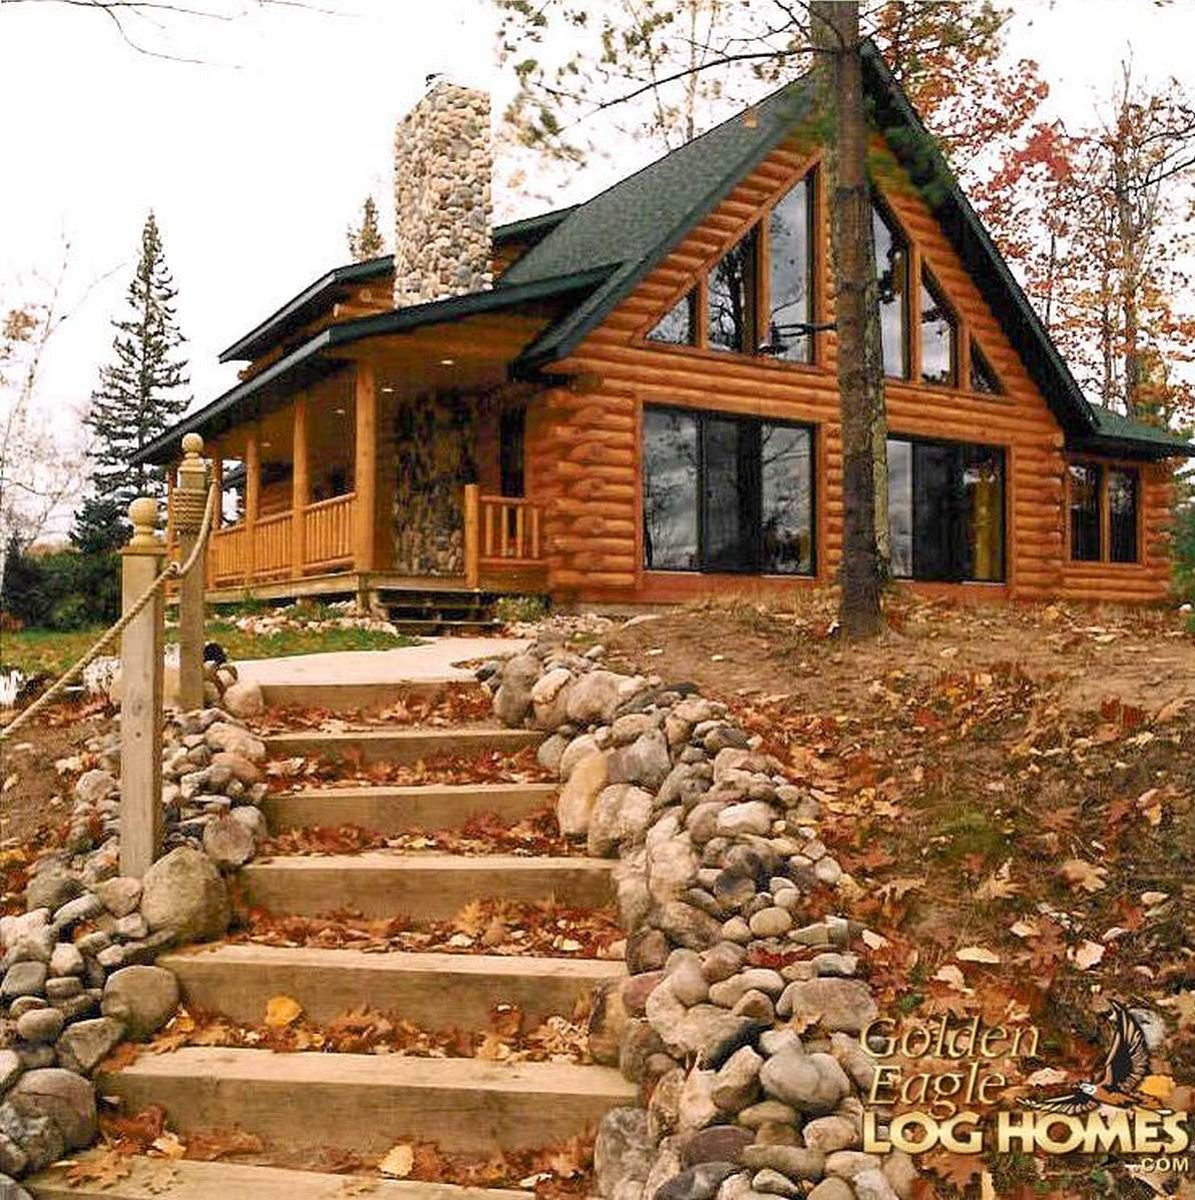 9 Ideas For Small Homes Cabins: Custom Plan 2 - Exterior View